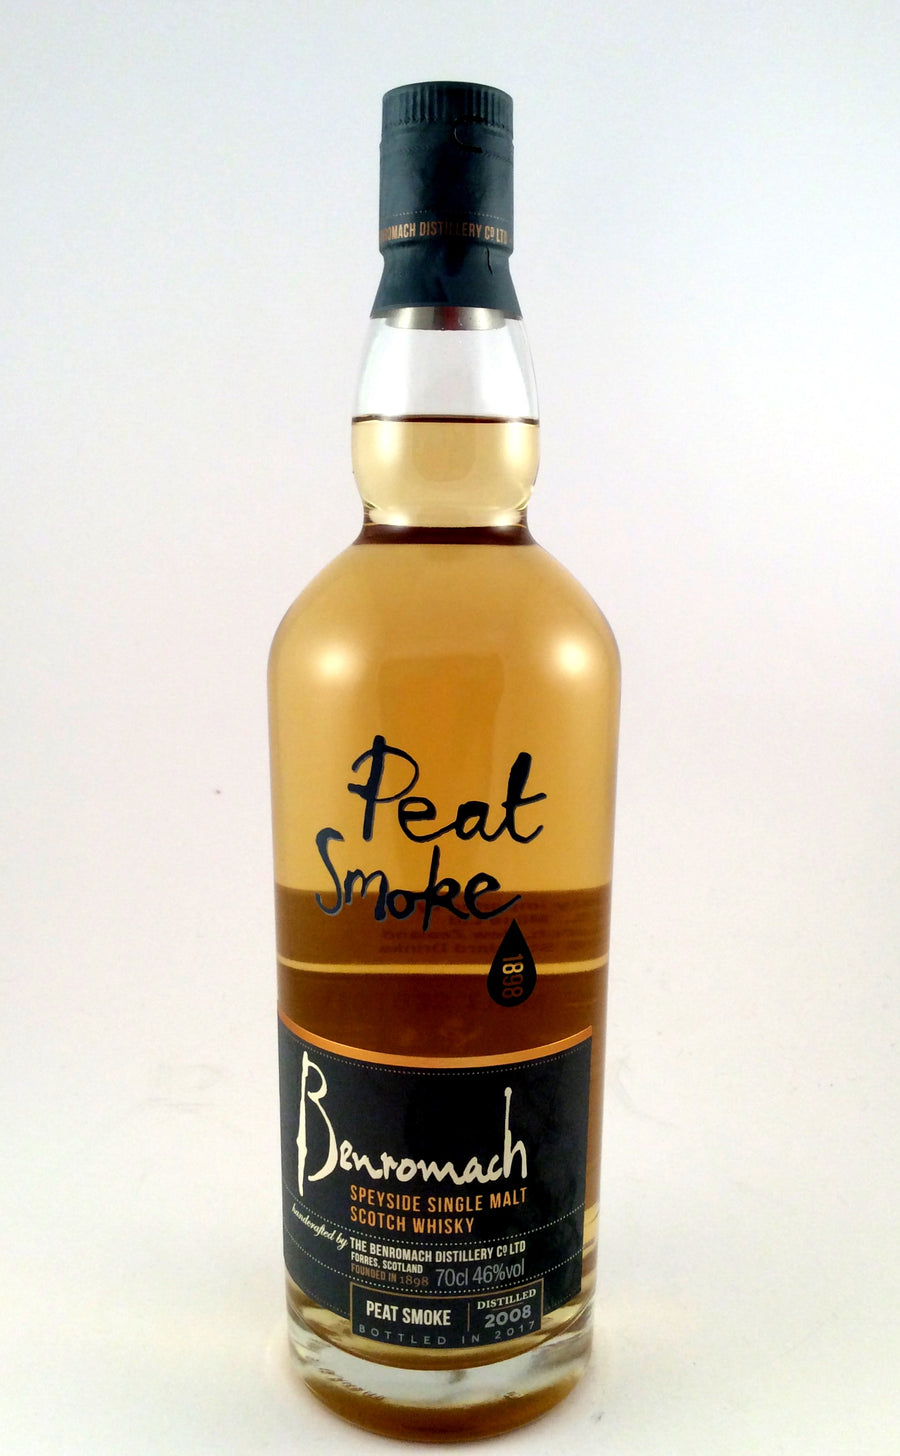 Benromach 'Peat Smoke' Speyside Single Malt Whisky 2008-Spirits-Wineseeker